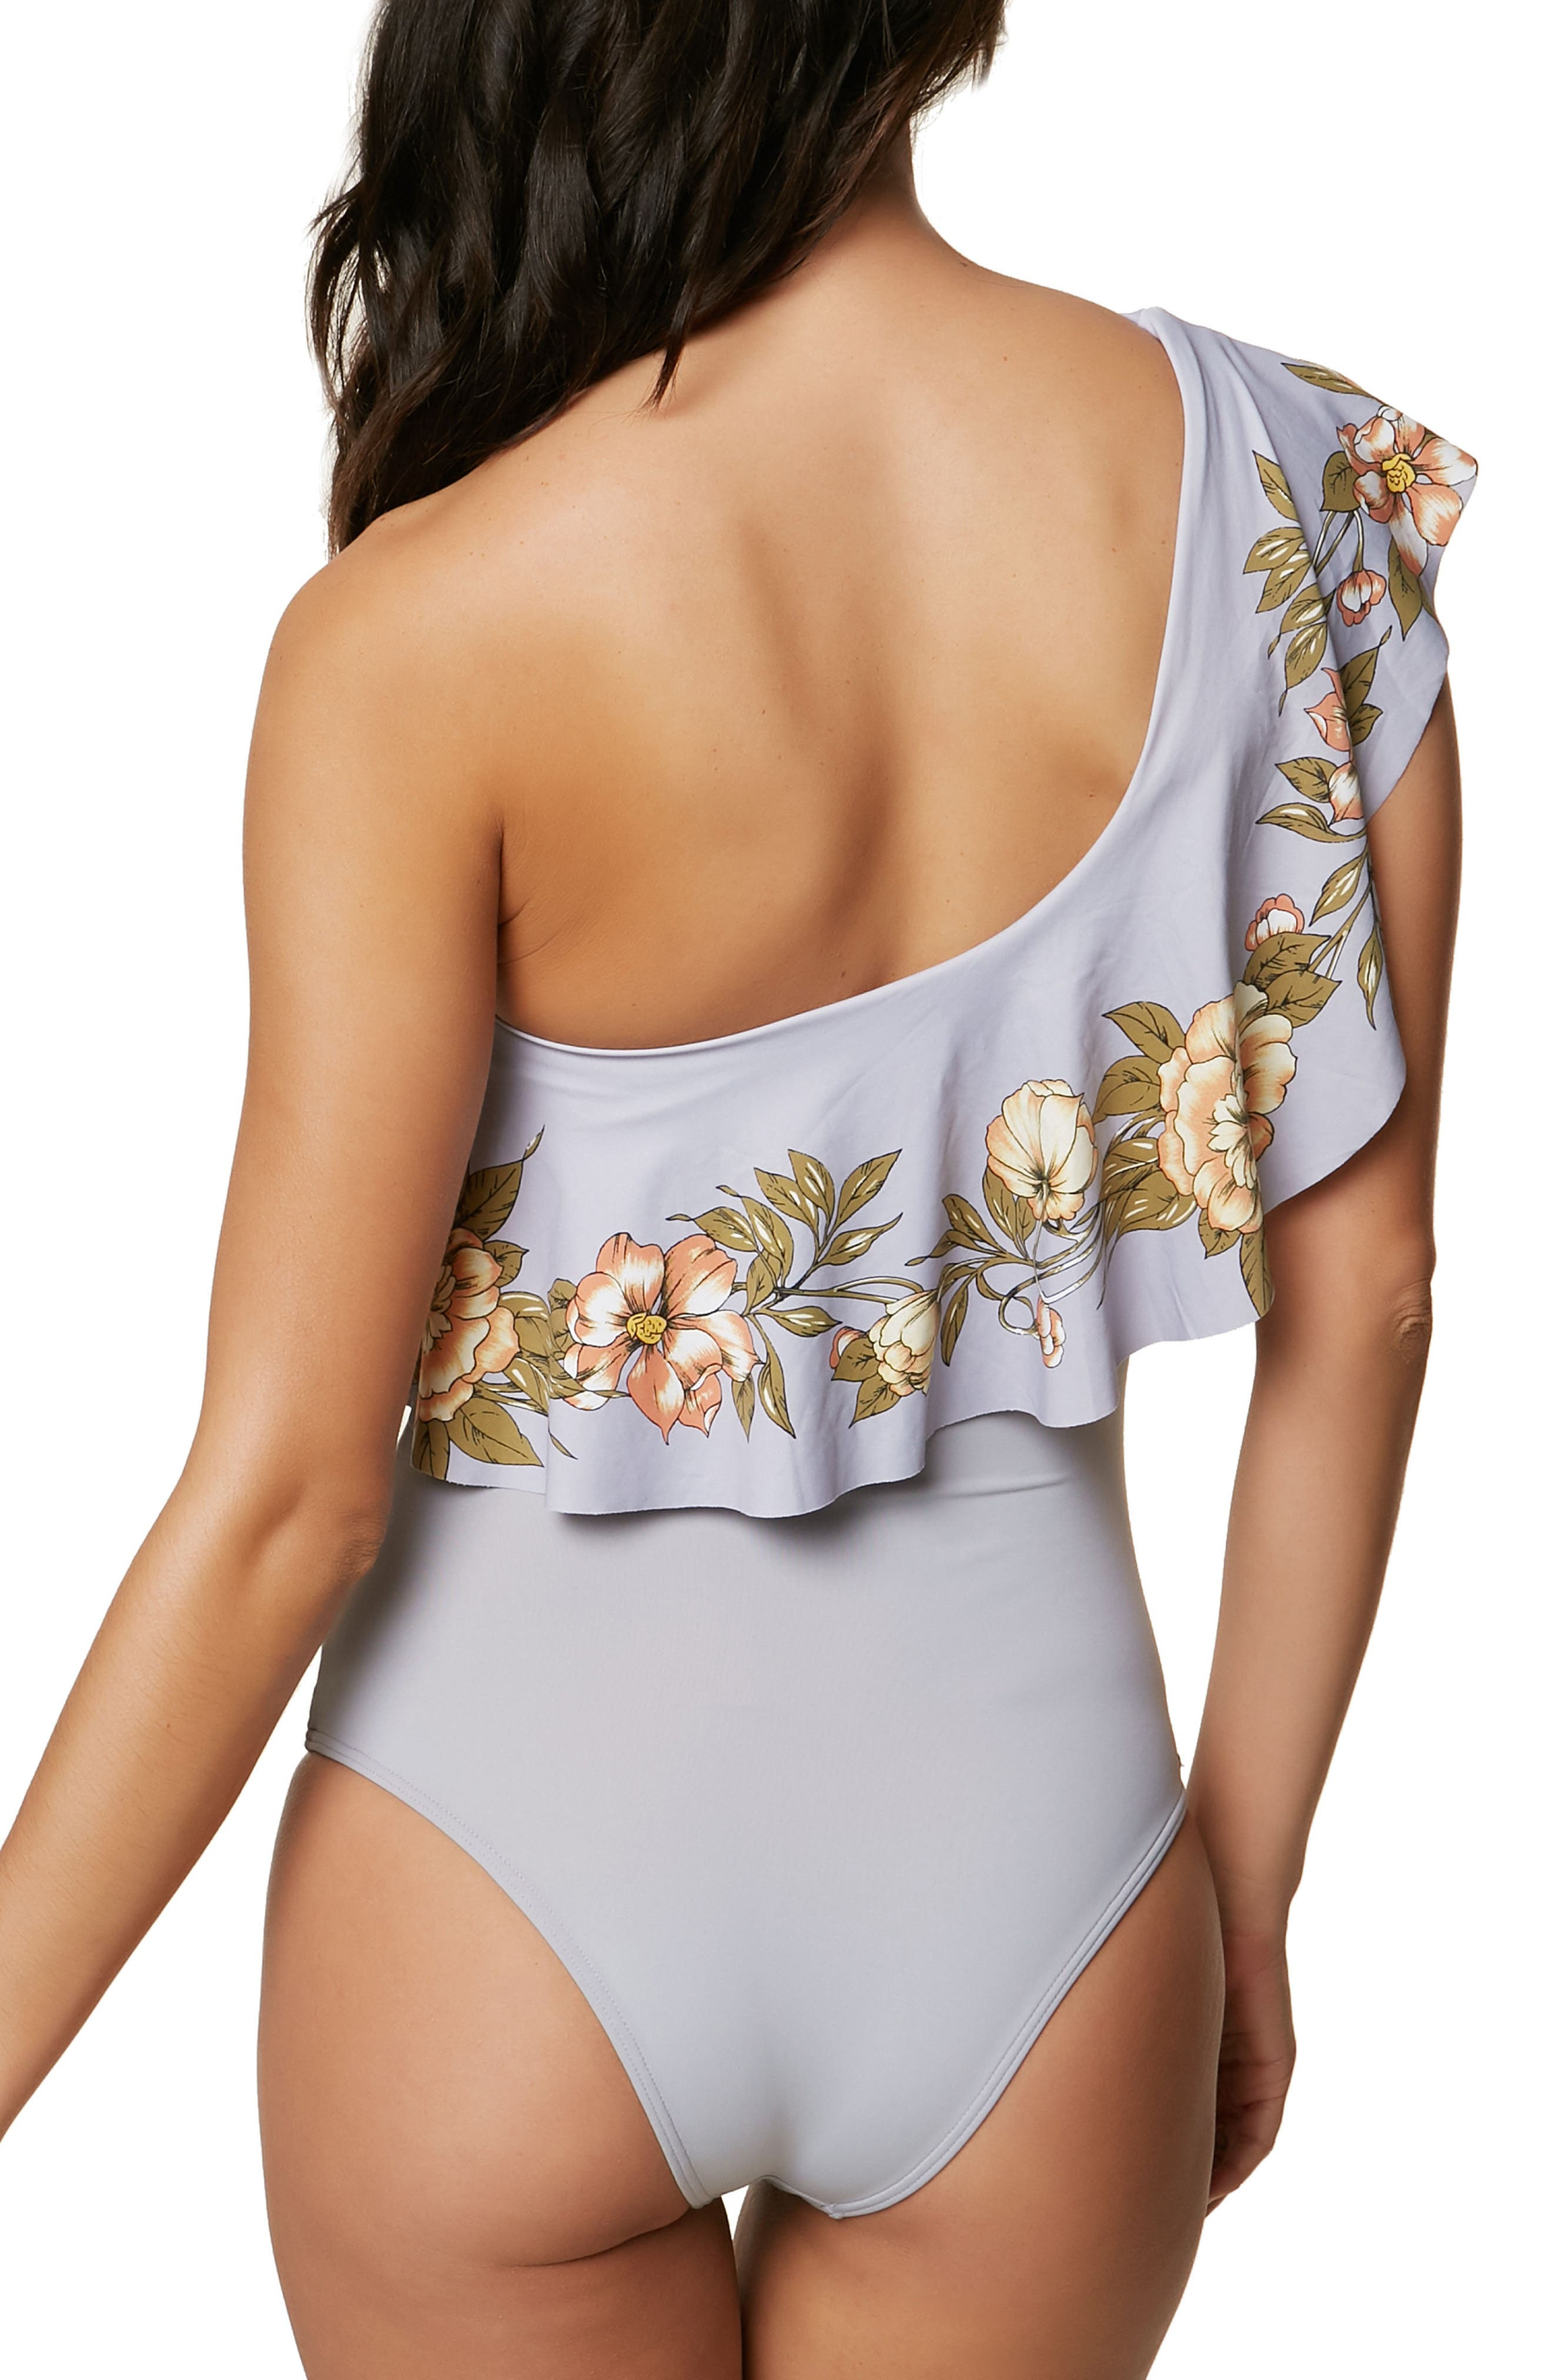 Aloha Floral Ruffle One-Piece Swimsuit,                             Alternate thumbnail 2, color,                             020